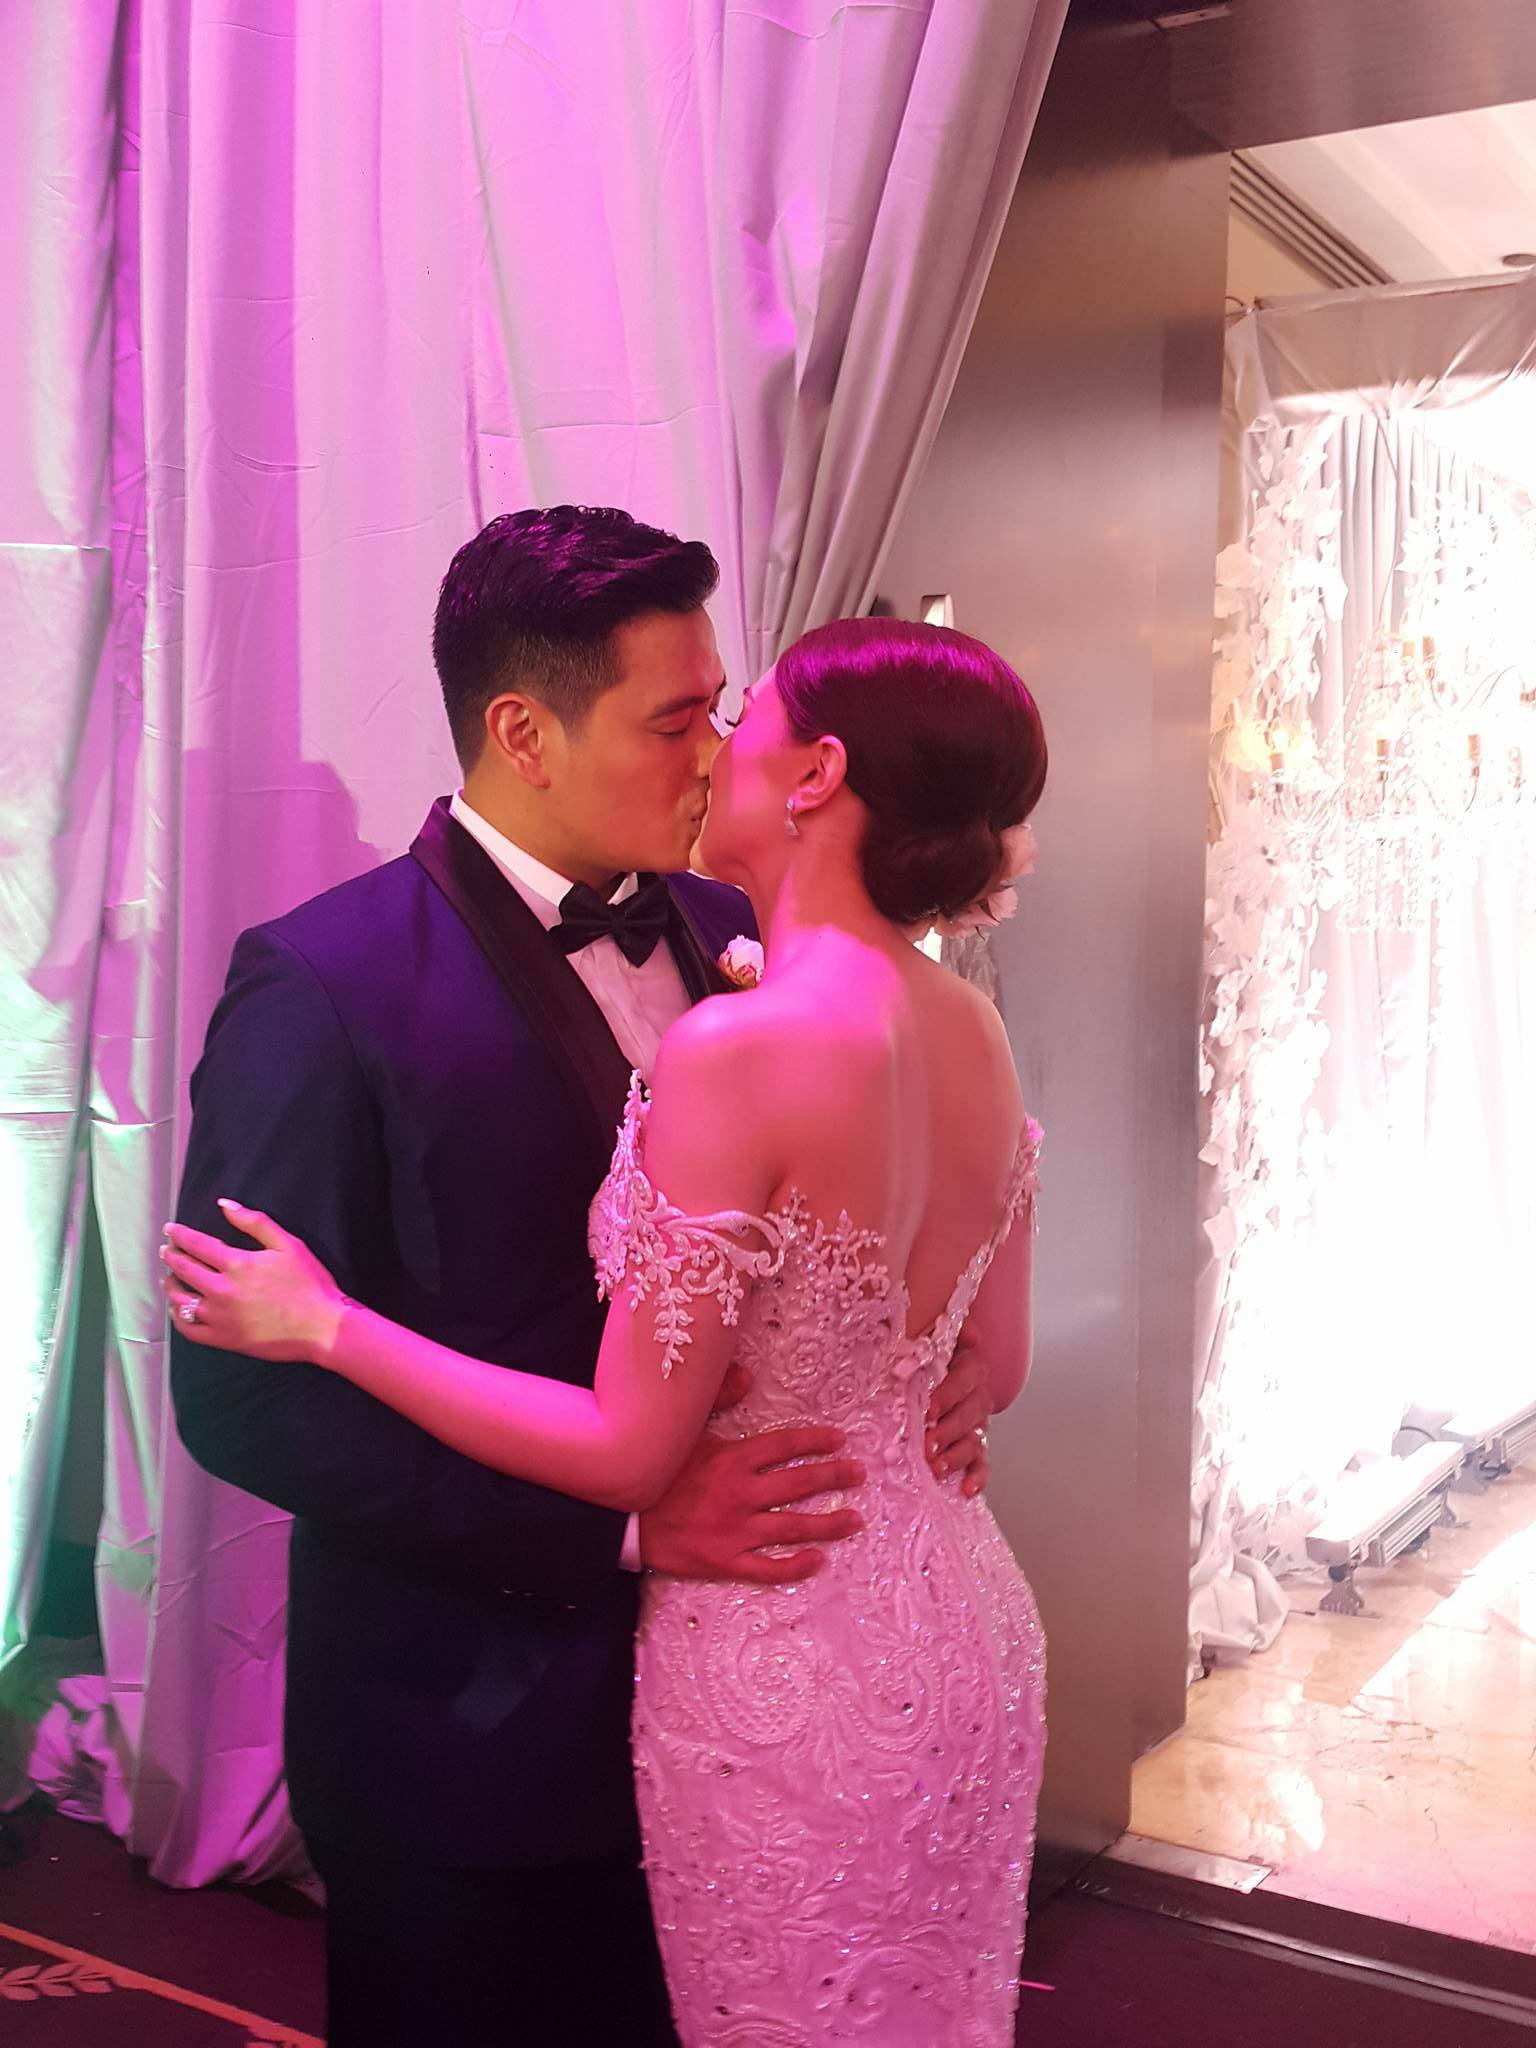 Alfred Vargas marries his amore - PSR.ph